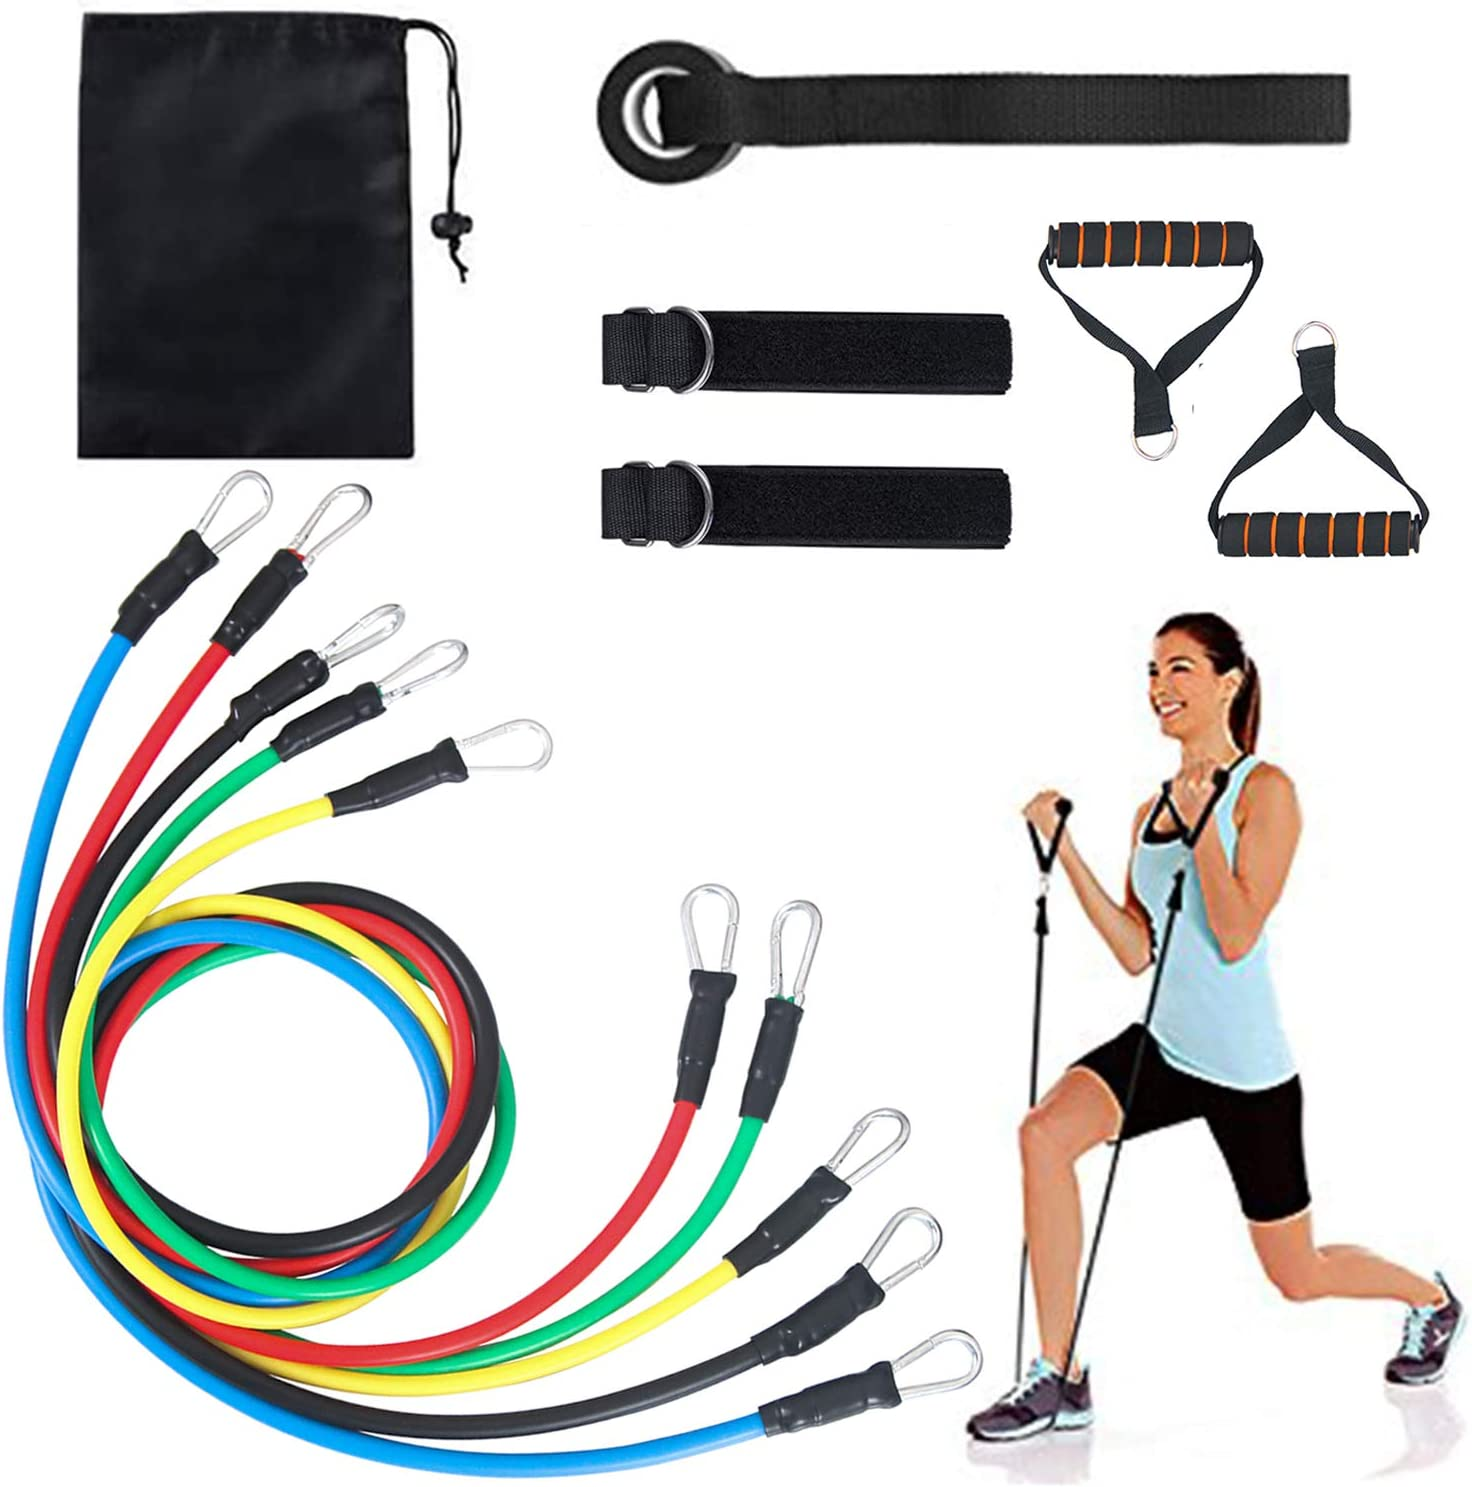 DiaryLook Exercise Resistance Bands with Handle Set,Stretch Fitness Bands for Home GYM,17 Pack Workout Equipment with 2 Threaded Anti-Slip Handle 1 Door Anchor 2 Adjustable Ankle Straps and Carry Bag